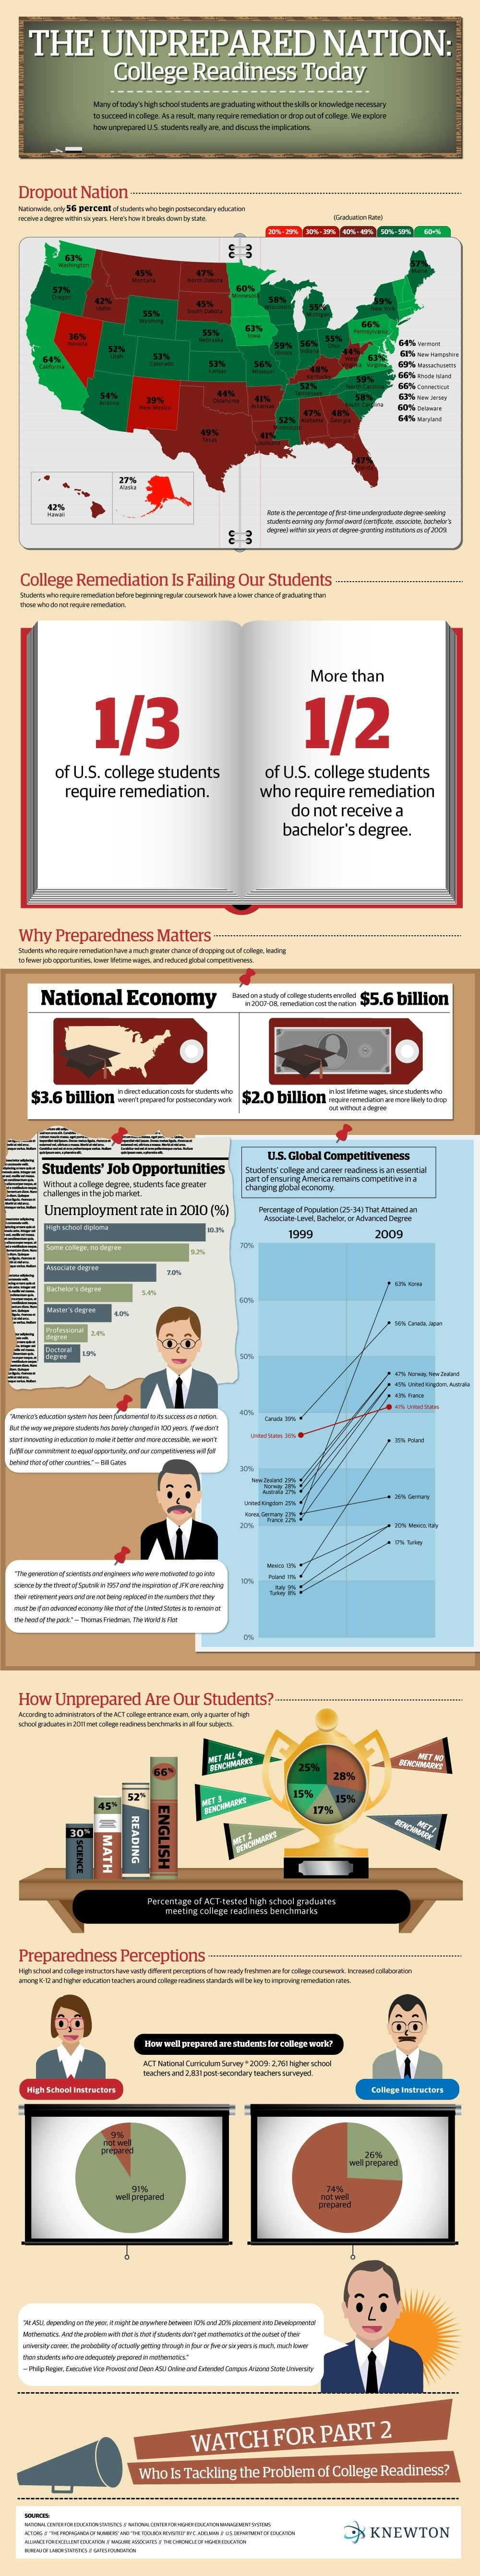 The Unprepared Nation: College Readiness Today Infographic